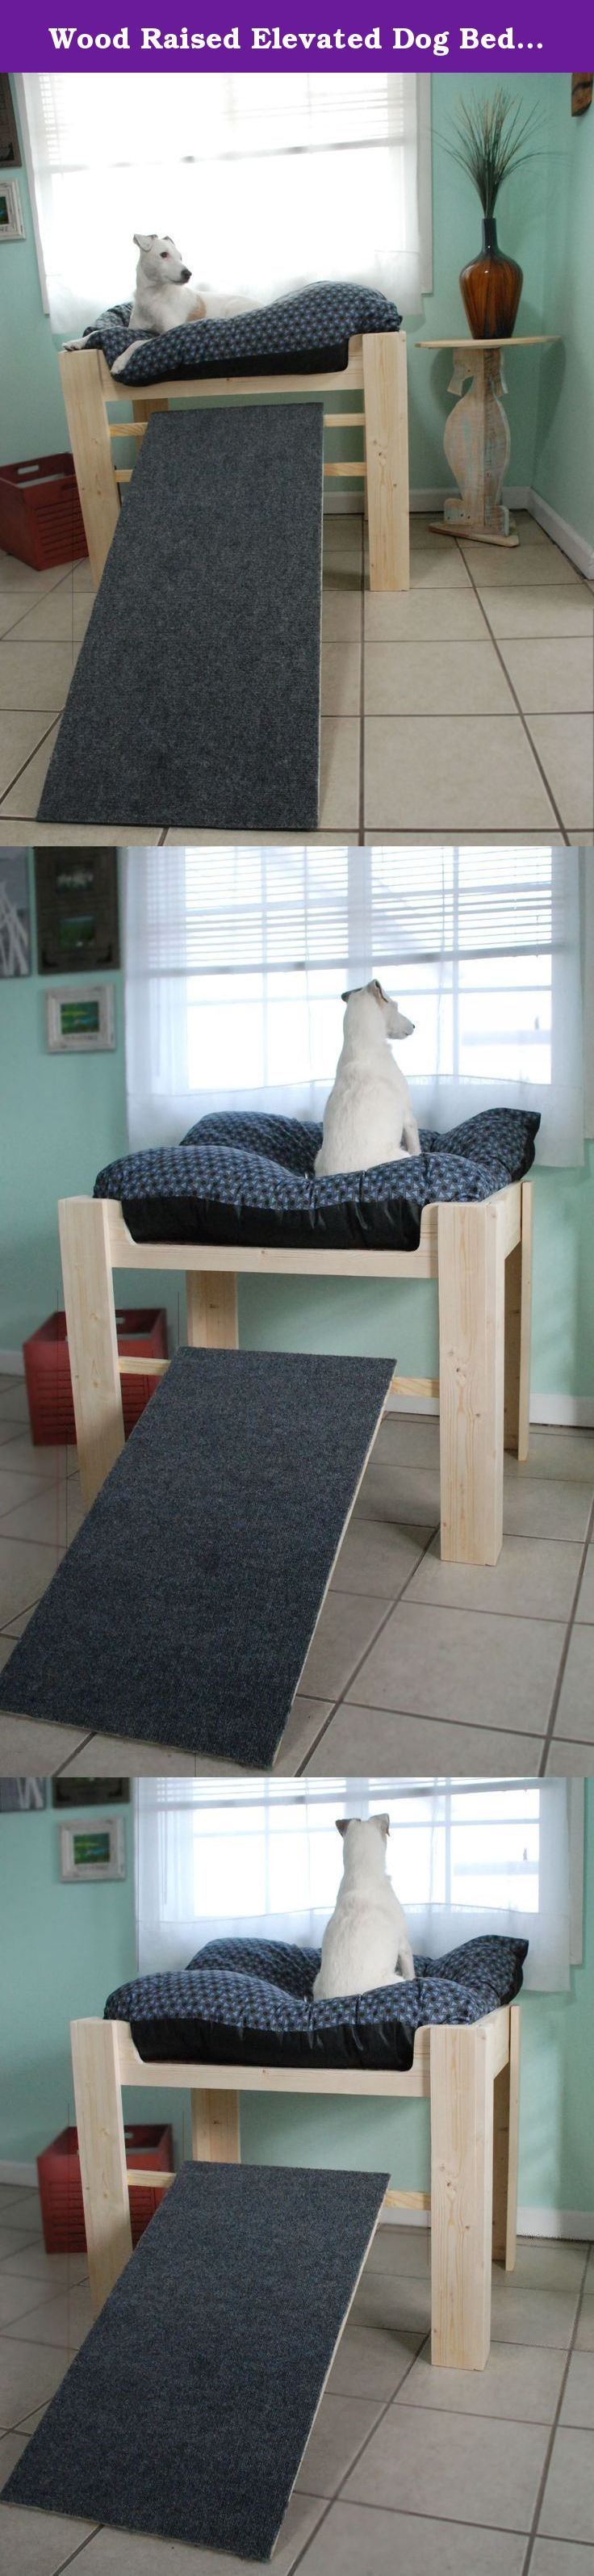 Wood Raised Elevated Dog Bed Furniture. Put Your Pet Next to You, with Ramp or Step. The idea for this bed came from our own personal needs. Our Jack Russell was taking up the bed for years. We would awaken every time he would move in and out of the covers. We weren't sure he would agree to sleeping alone (Jack Russell's can be stubborn) but he has slept in his bed beside ours since the very first night. We believe he actually enjoys having his own space. This is a variation of our…